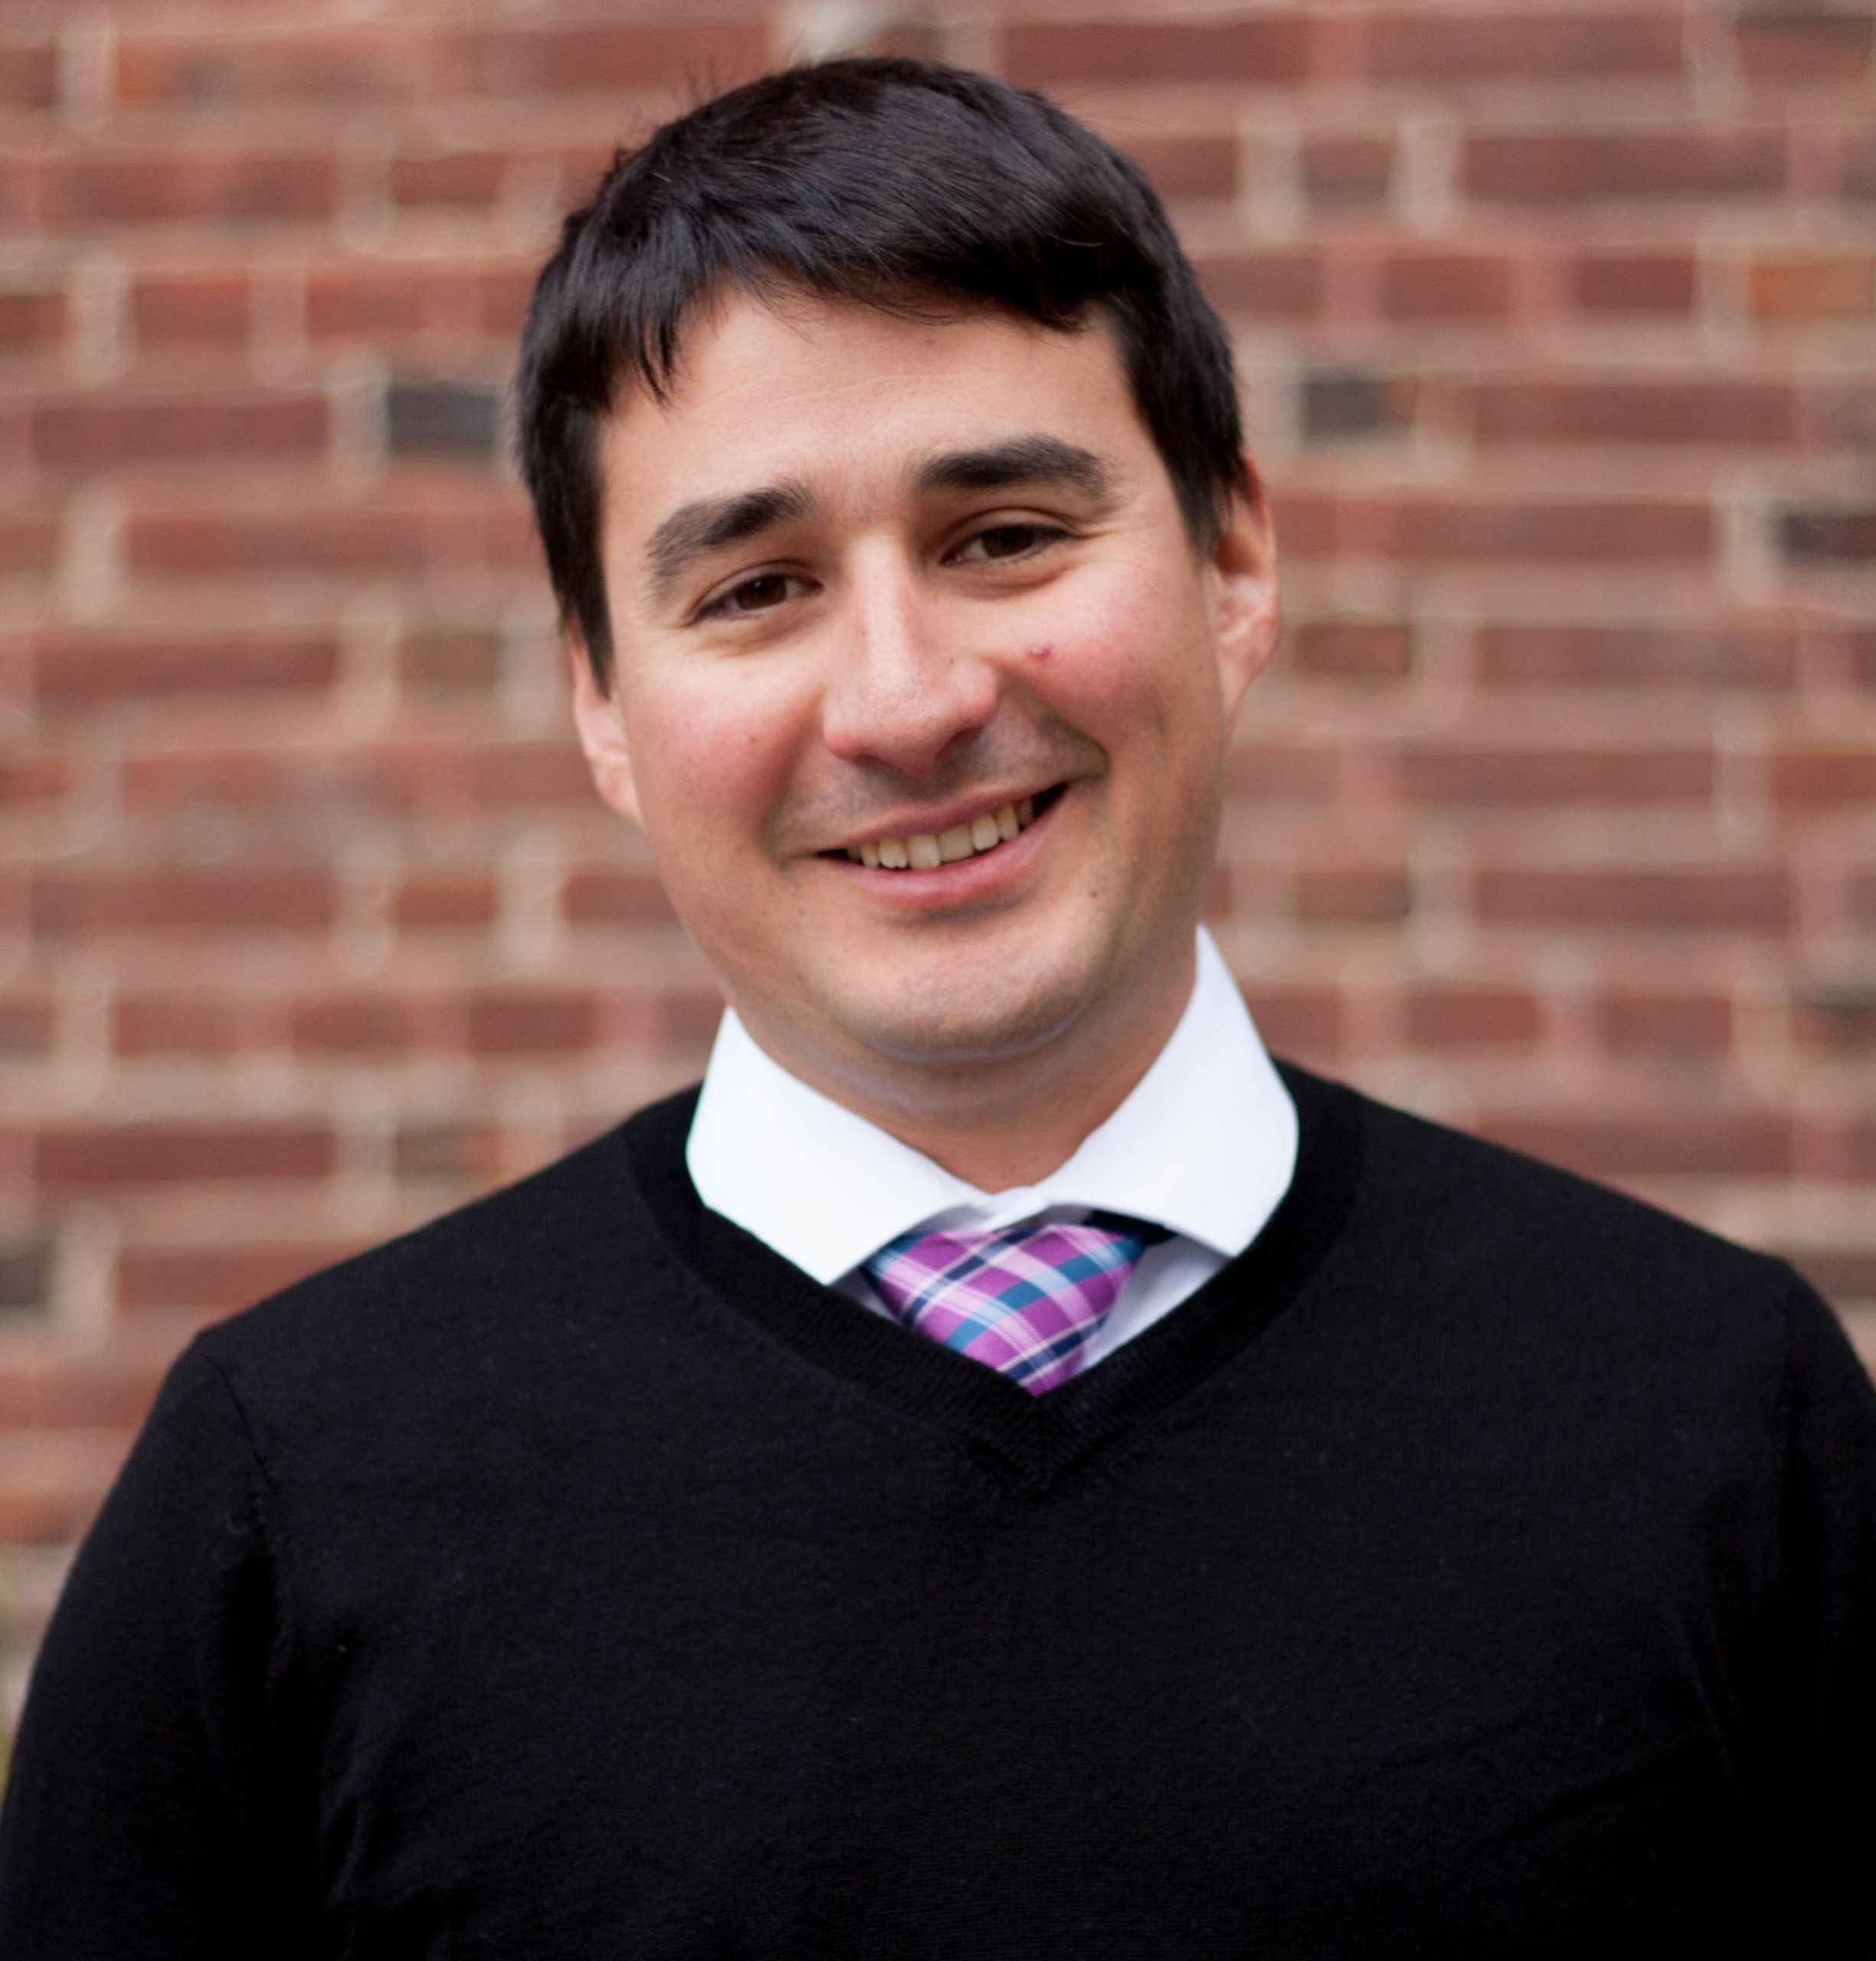 Jesus Barajas with short brown hair, a black shirt and a purple necktie